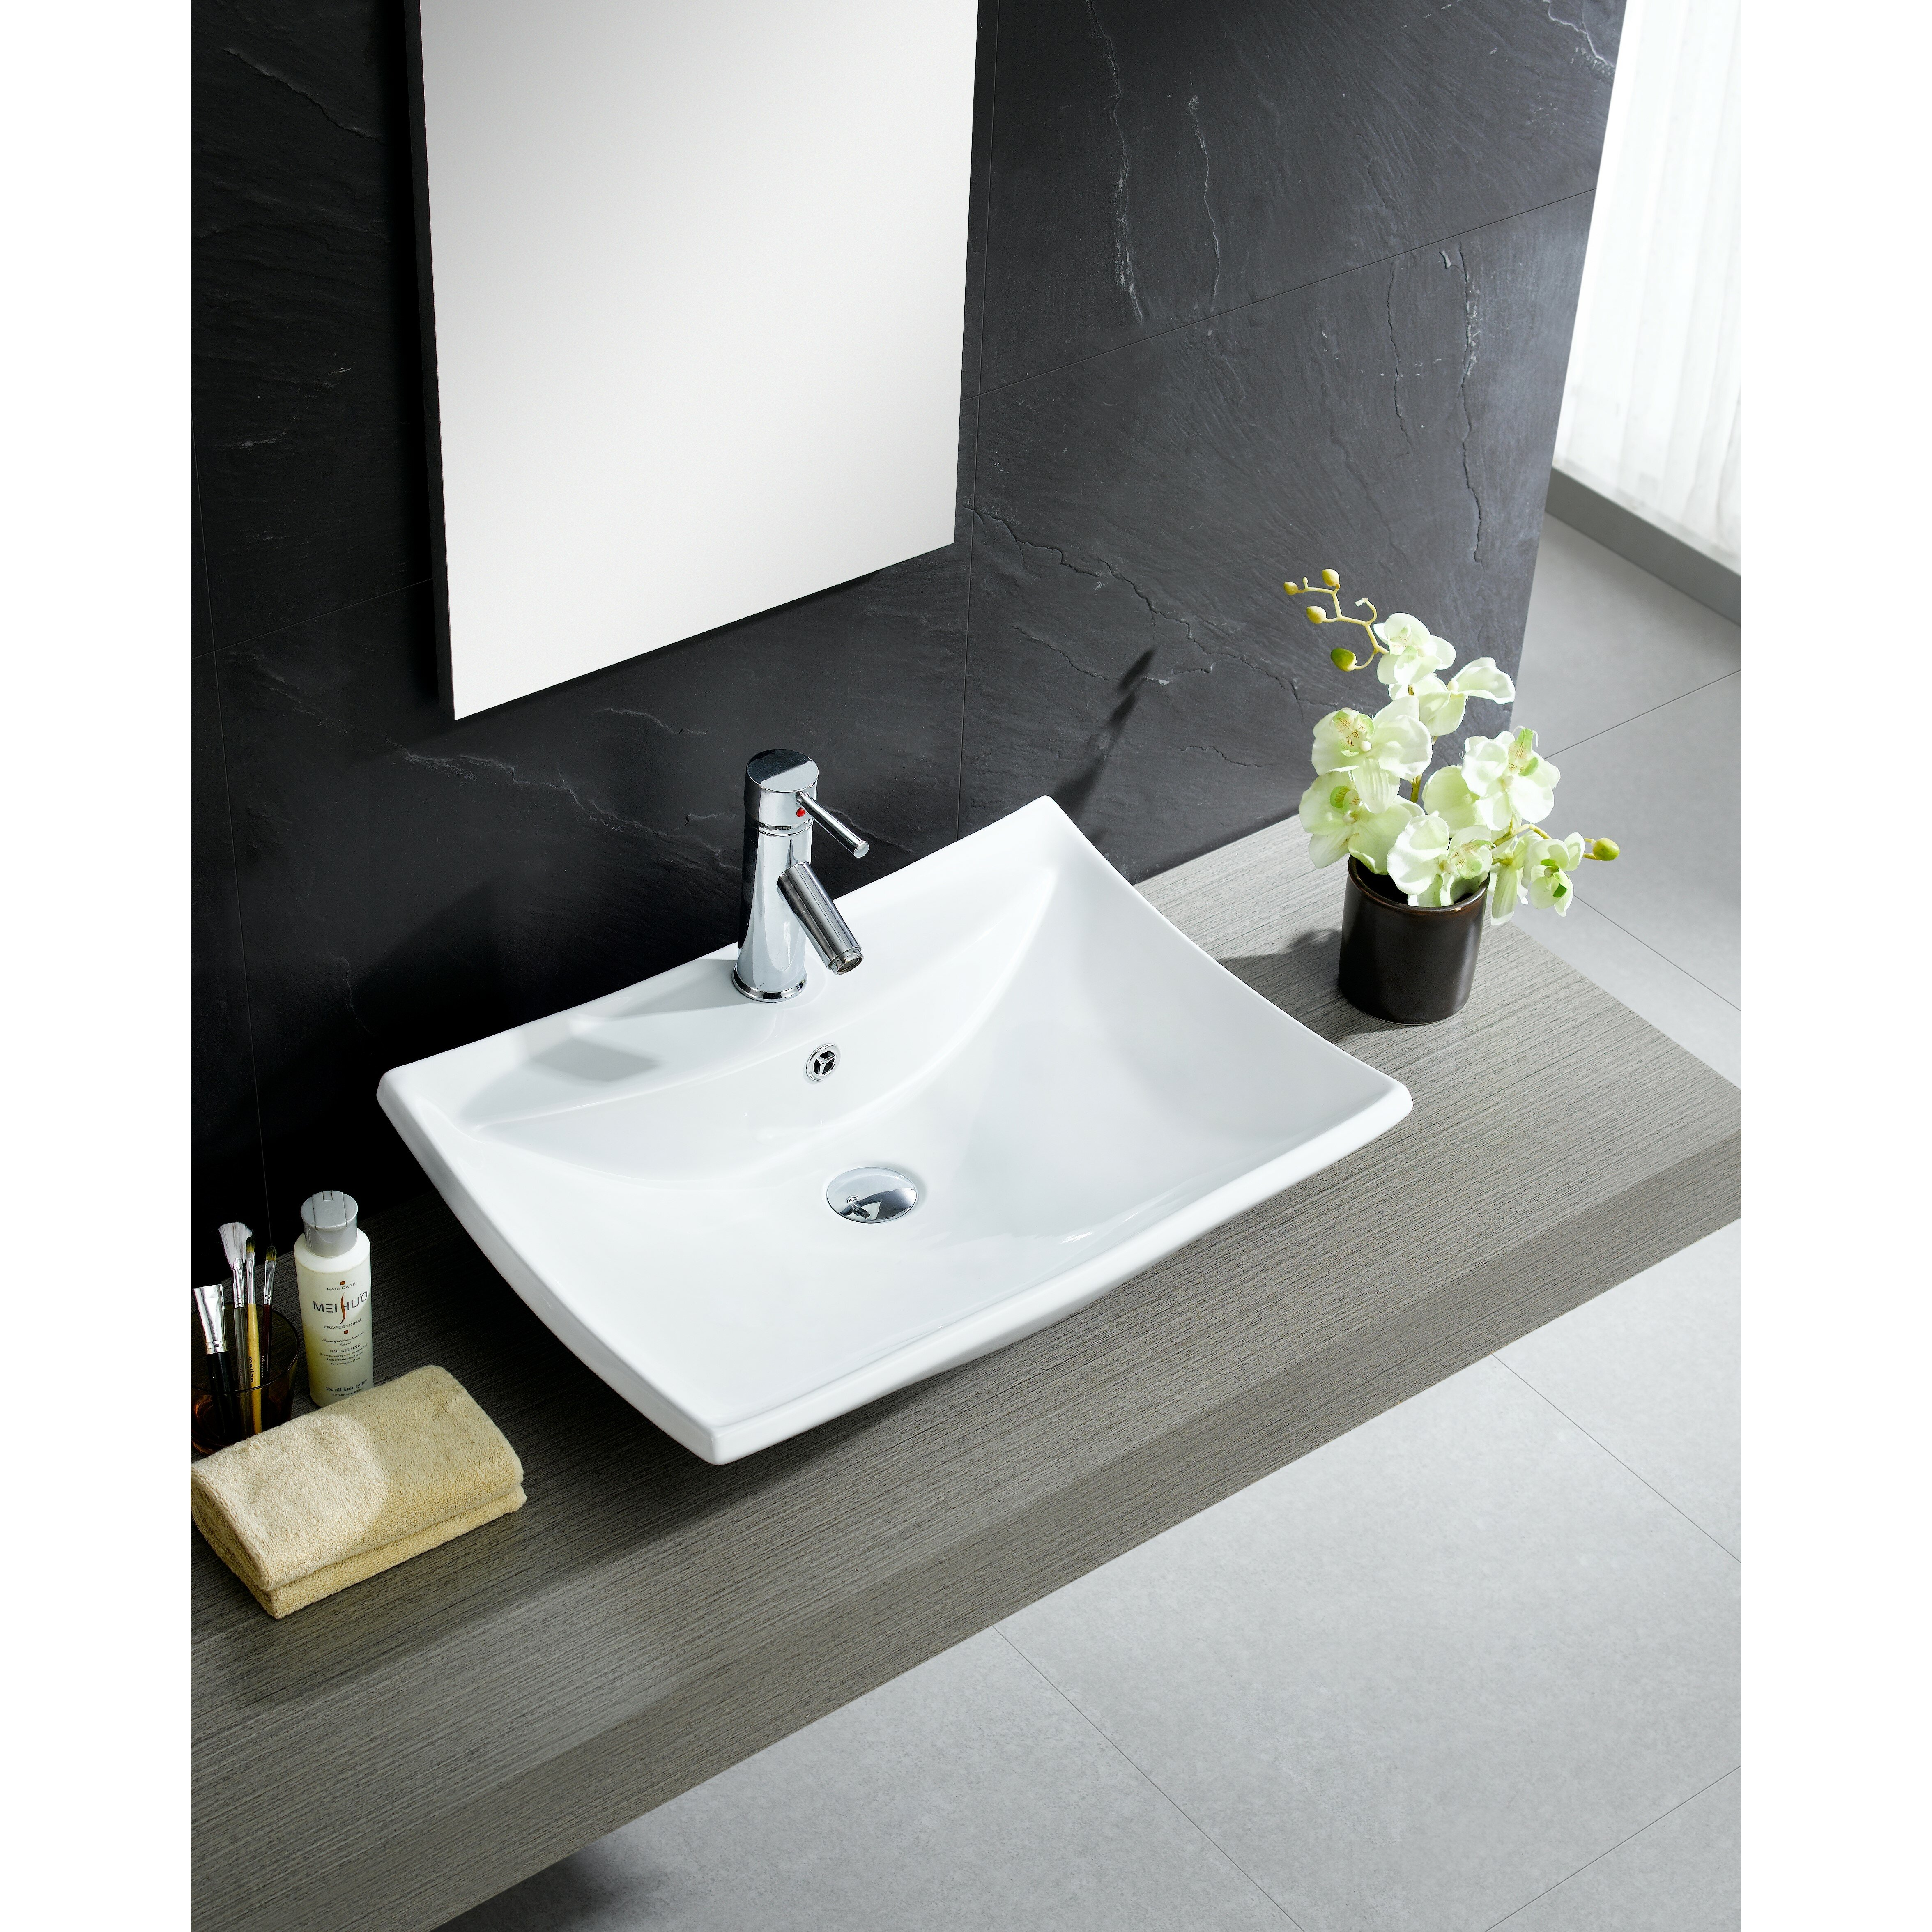 Bathroom square vessel sinks - Fine Fixtures Modern Vitreous Square Vessel Sink Vessel Bathroom Sink With Overflow